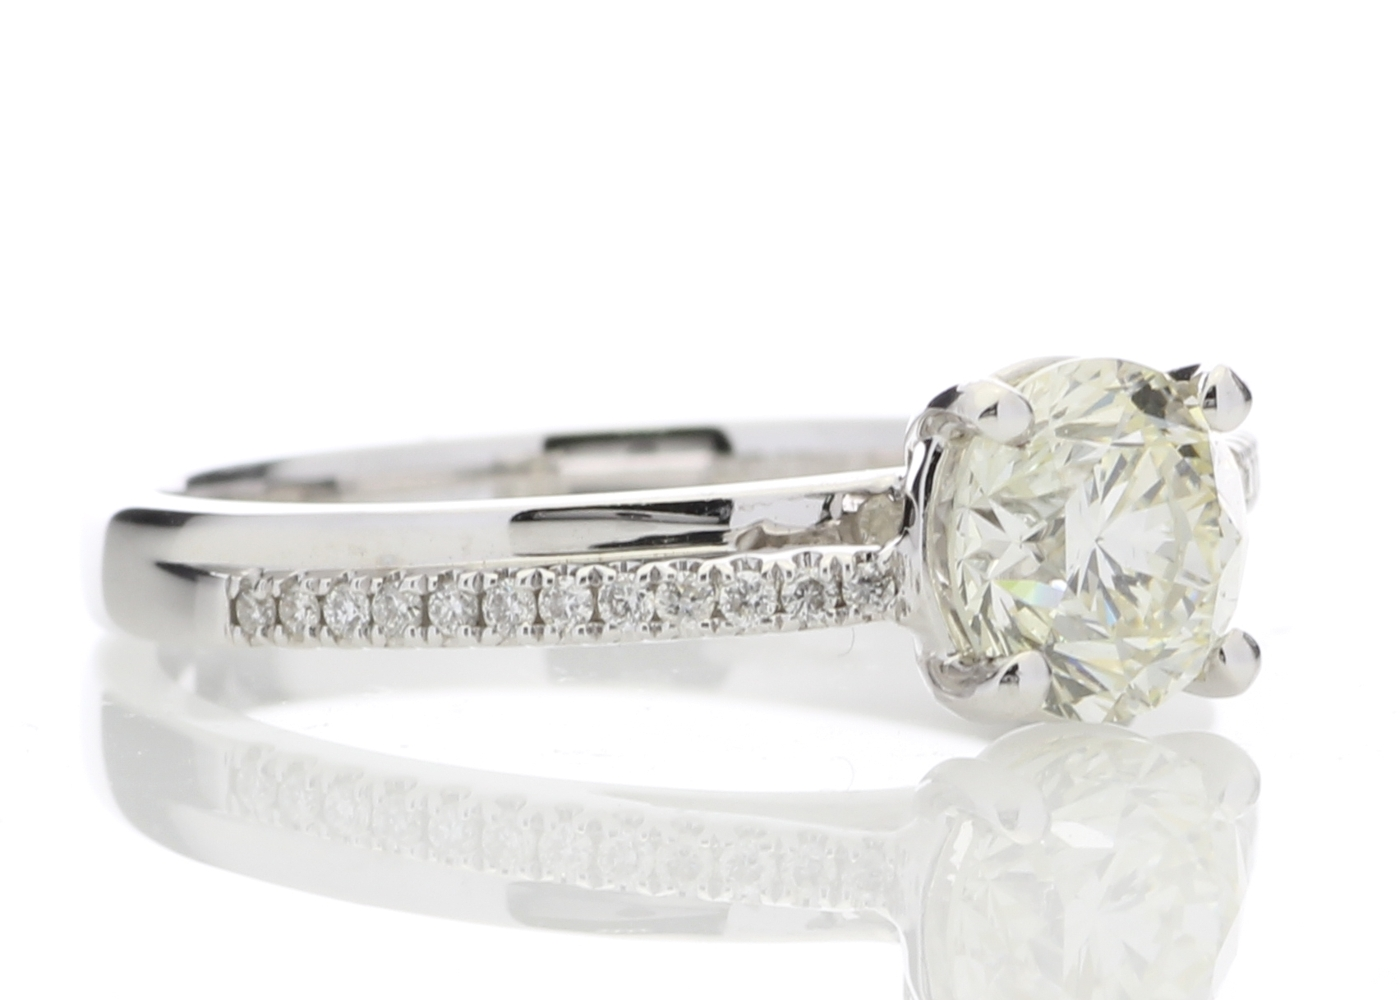 18ct White Gold Stone Set Shoulders Diamond Ring 1.11 Carats - Image 4 of 5